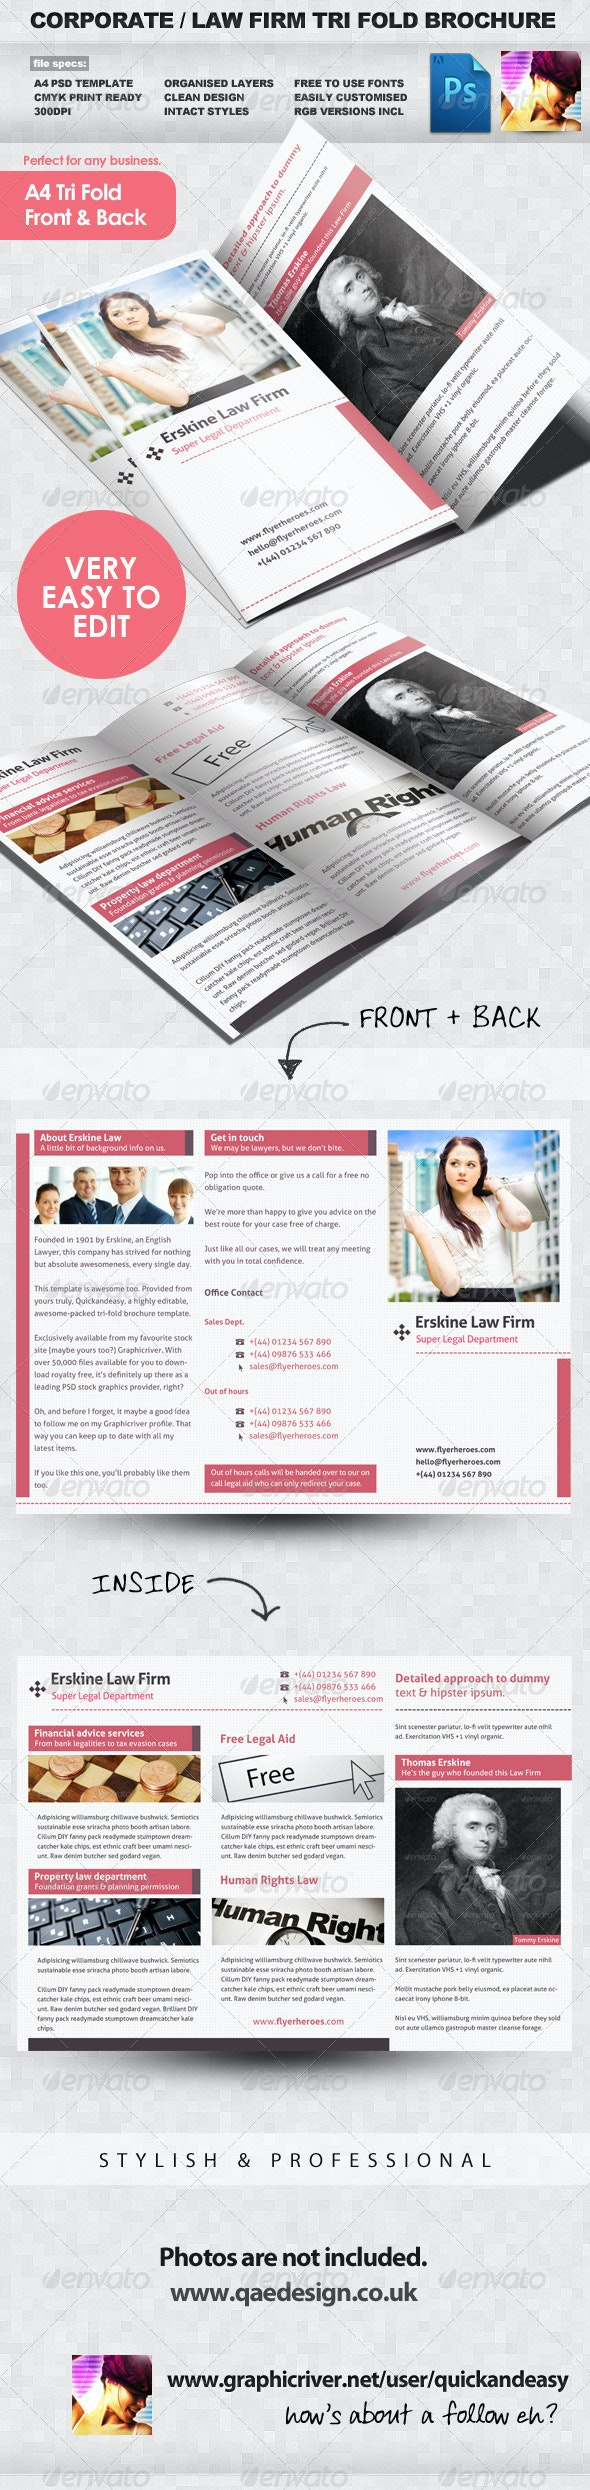 Law Firm Tri Fold Leaflet Brochure Template - Corporate Brochures